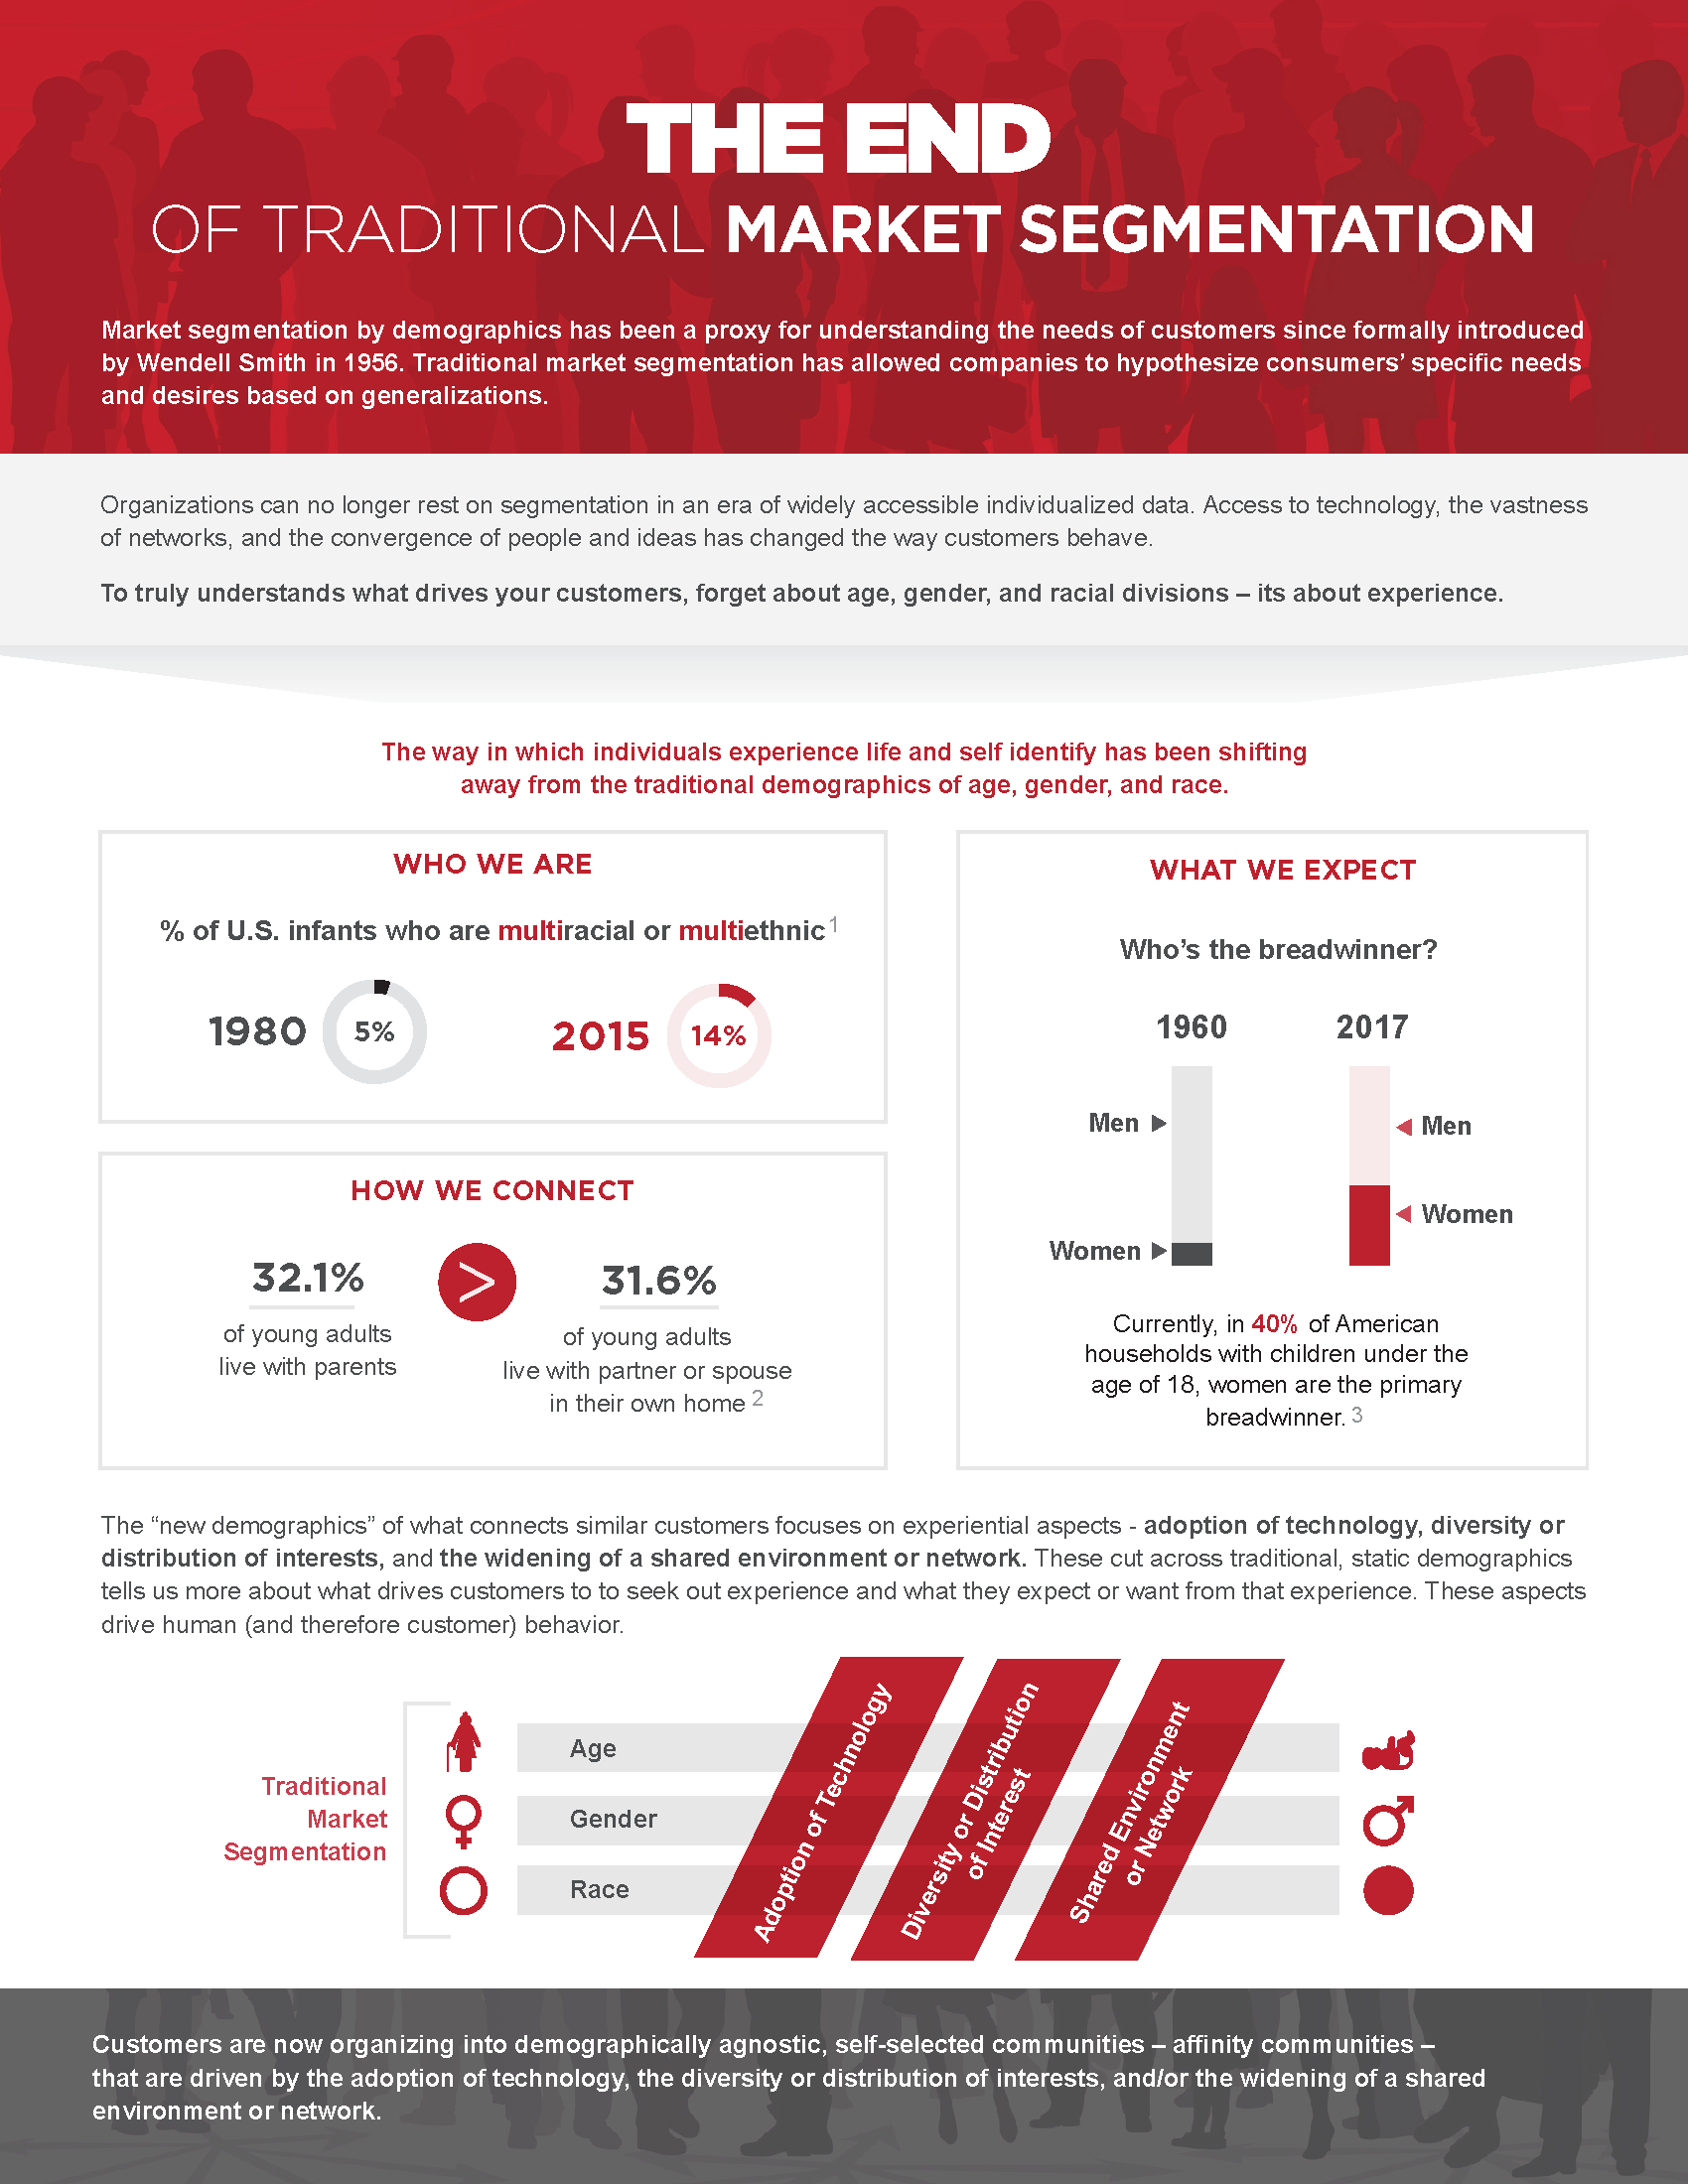 TA_Infographic_The_End_of_Market_Segmentation_v3_Page_1 (002).png